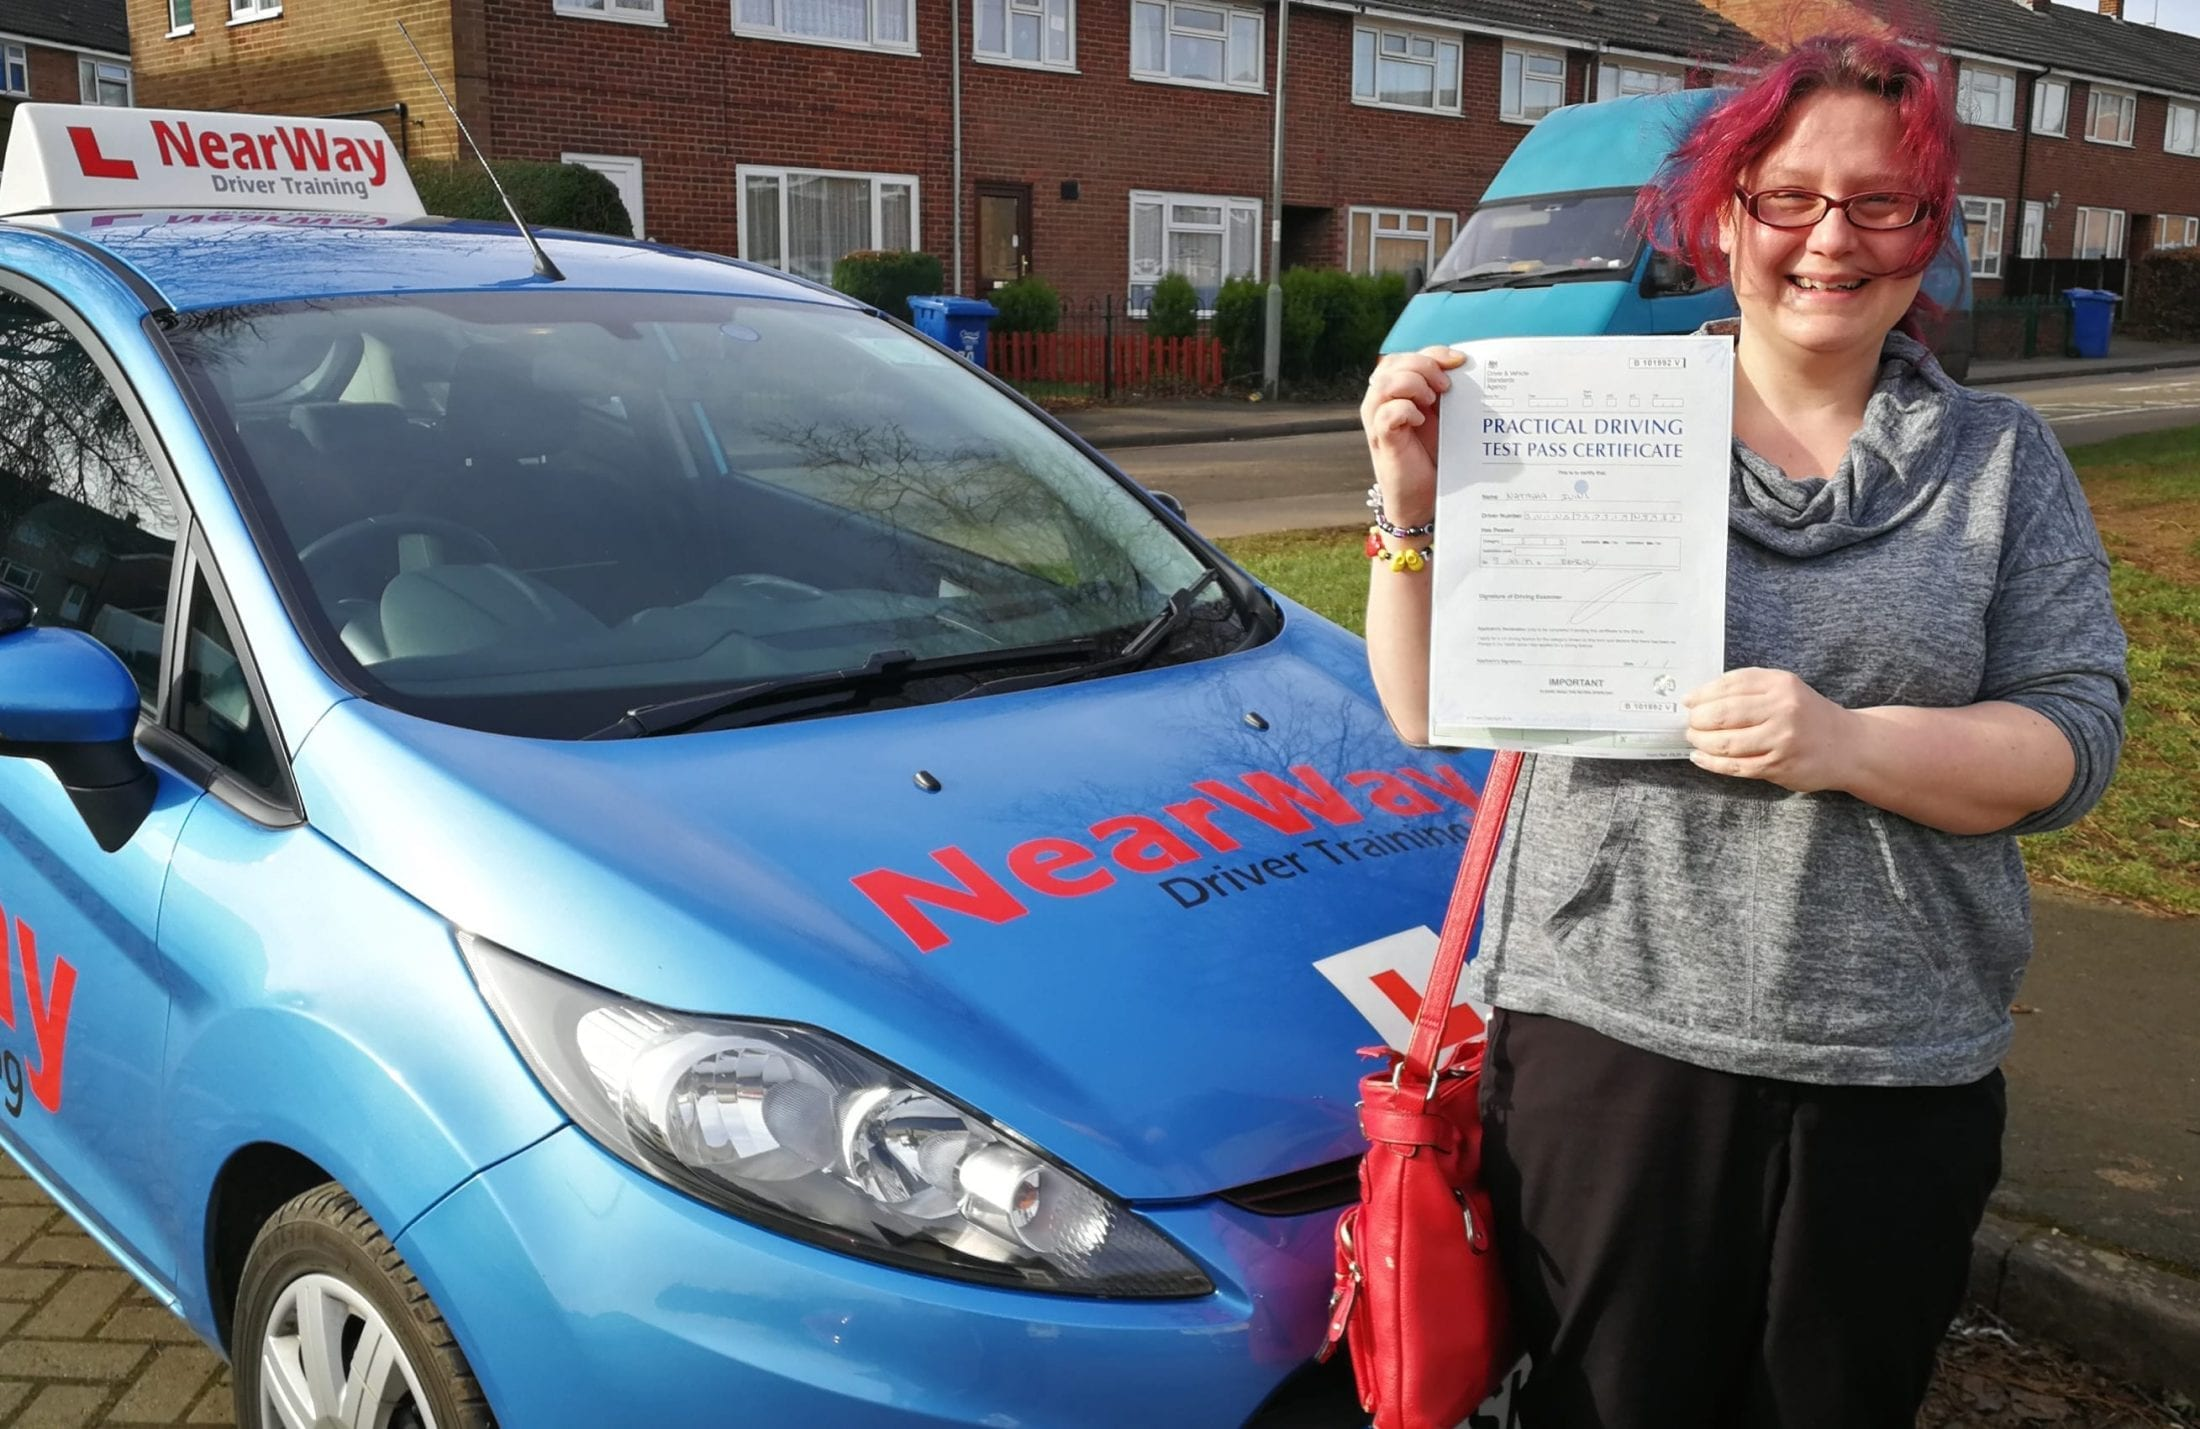 Tash Ivins Driving Test Review